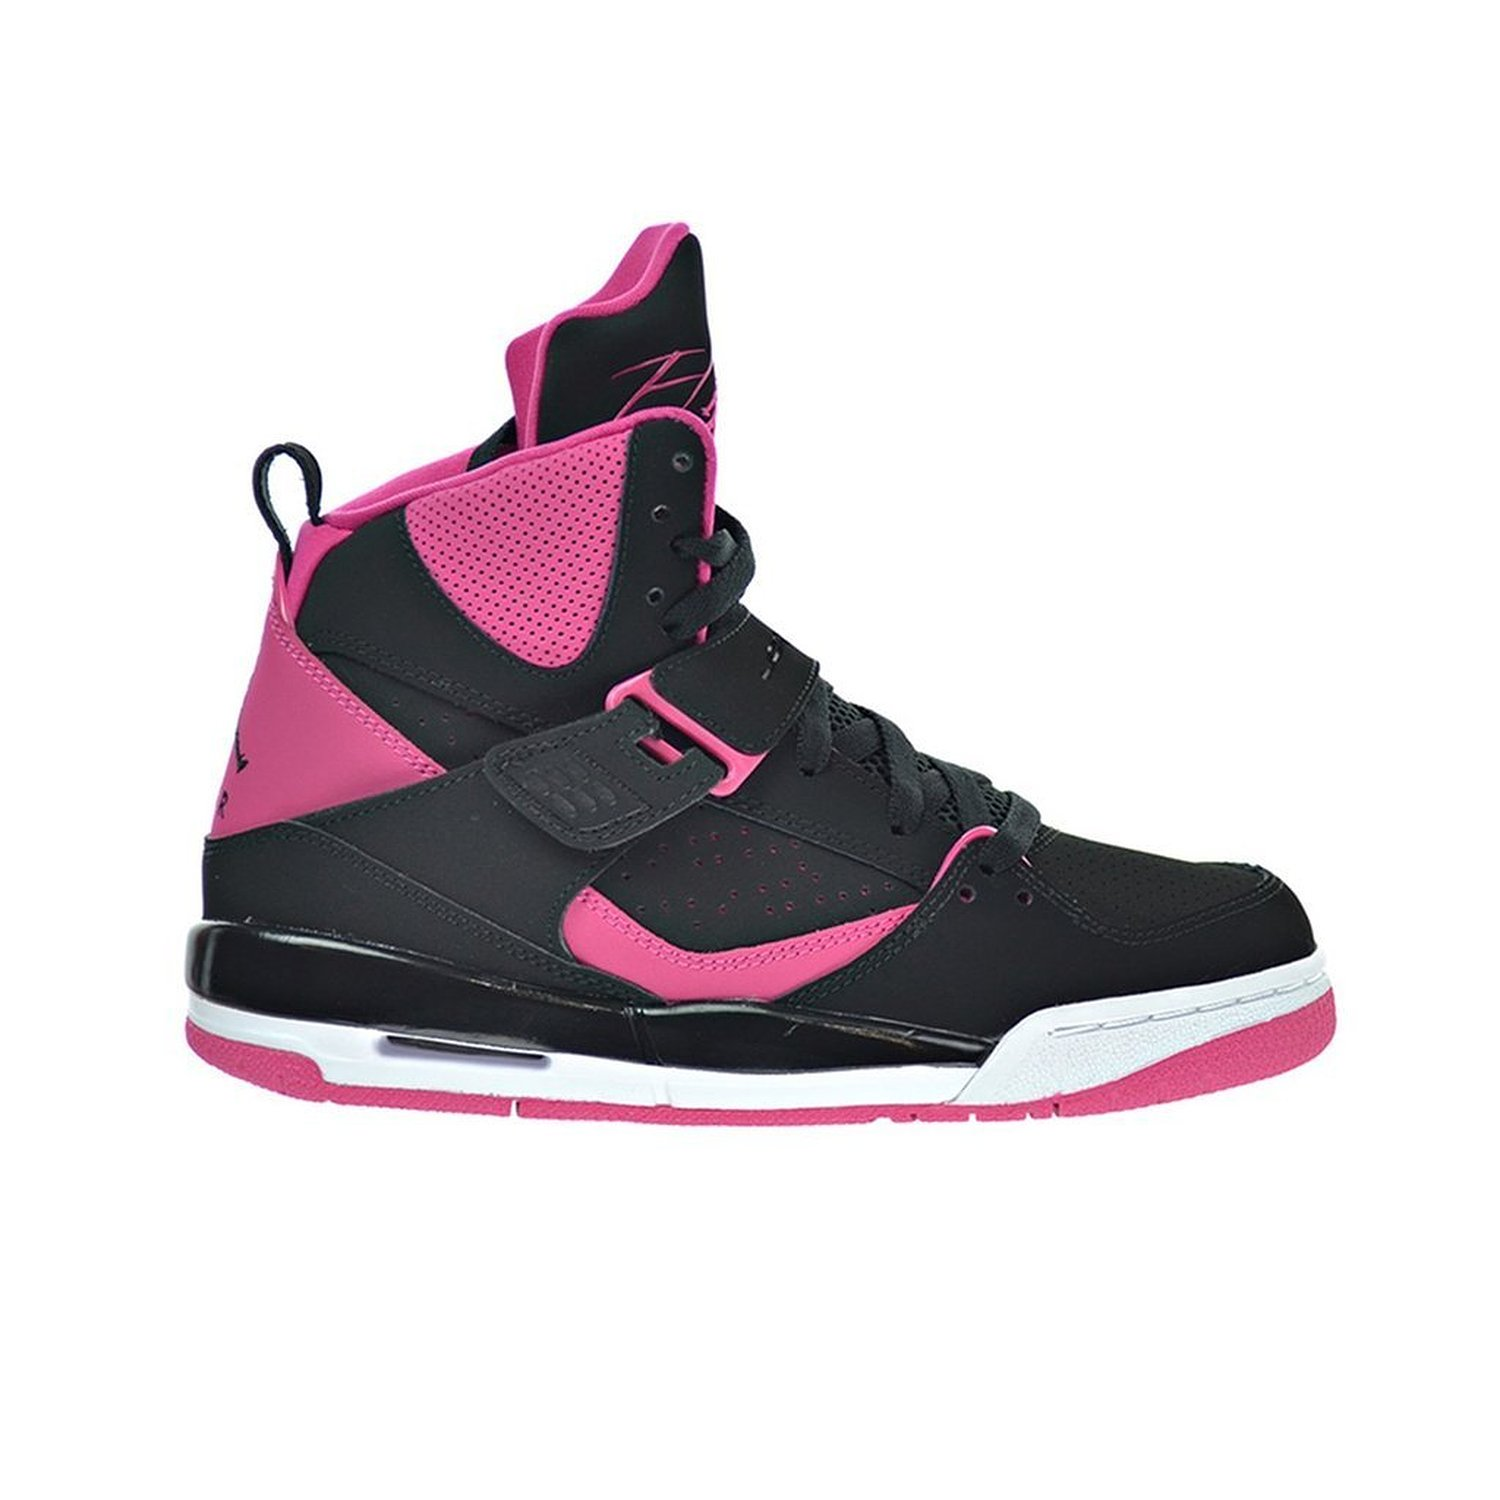 half off a8e51 eafe8 Get Quotations · Nike Jordan Kids Jordan Flight 45 High IP GP Basketball  Shoe